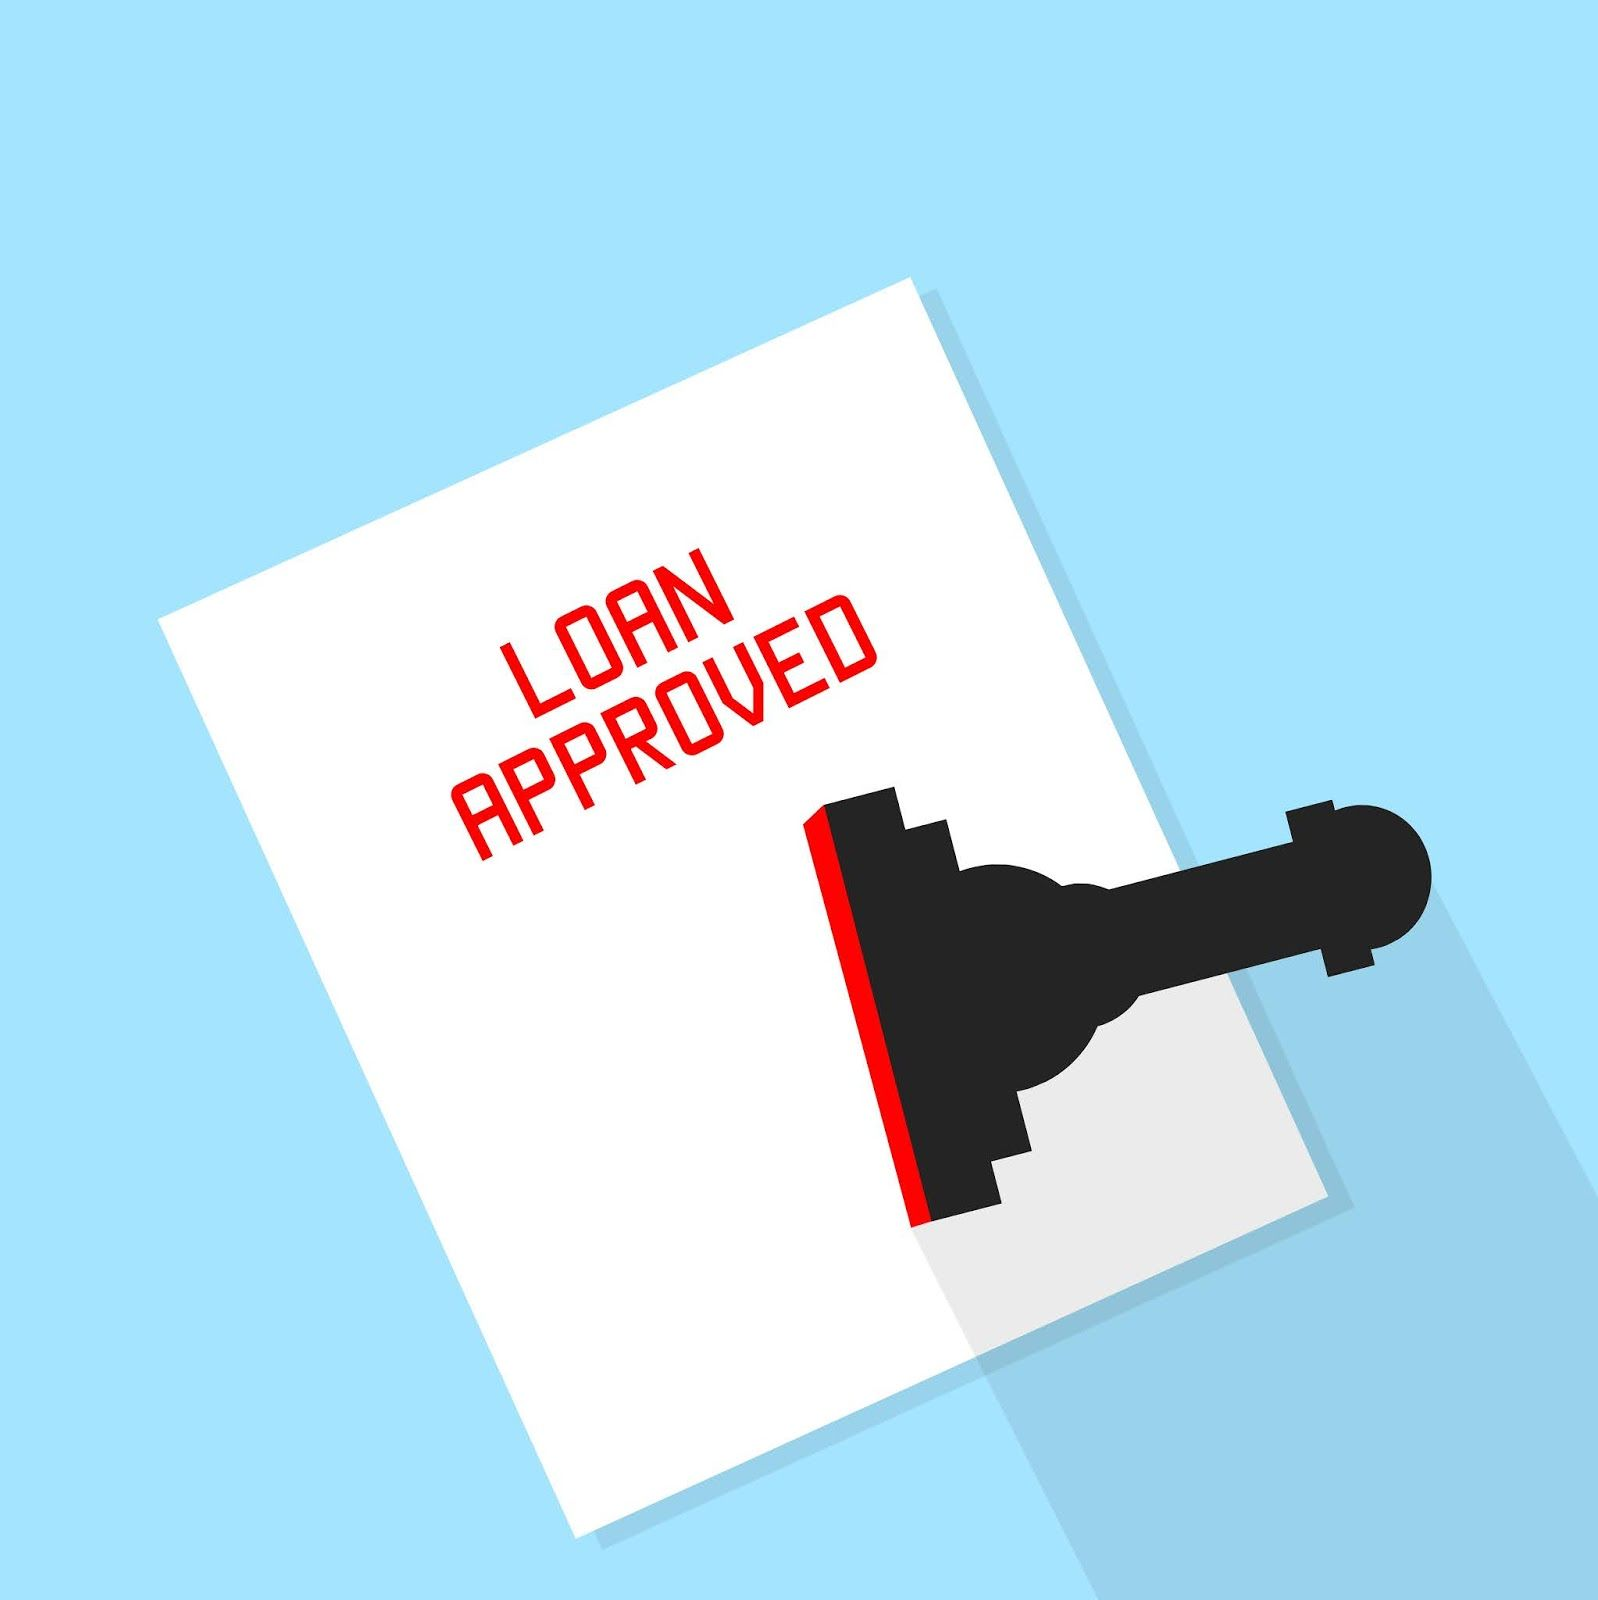 Download Free Images And Illustrations Illustration Of Loan Approval Stamp Personal Loans Loan Illustration